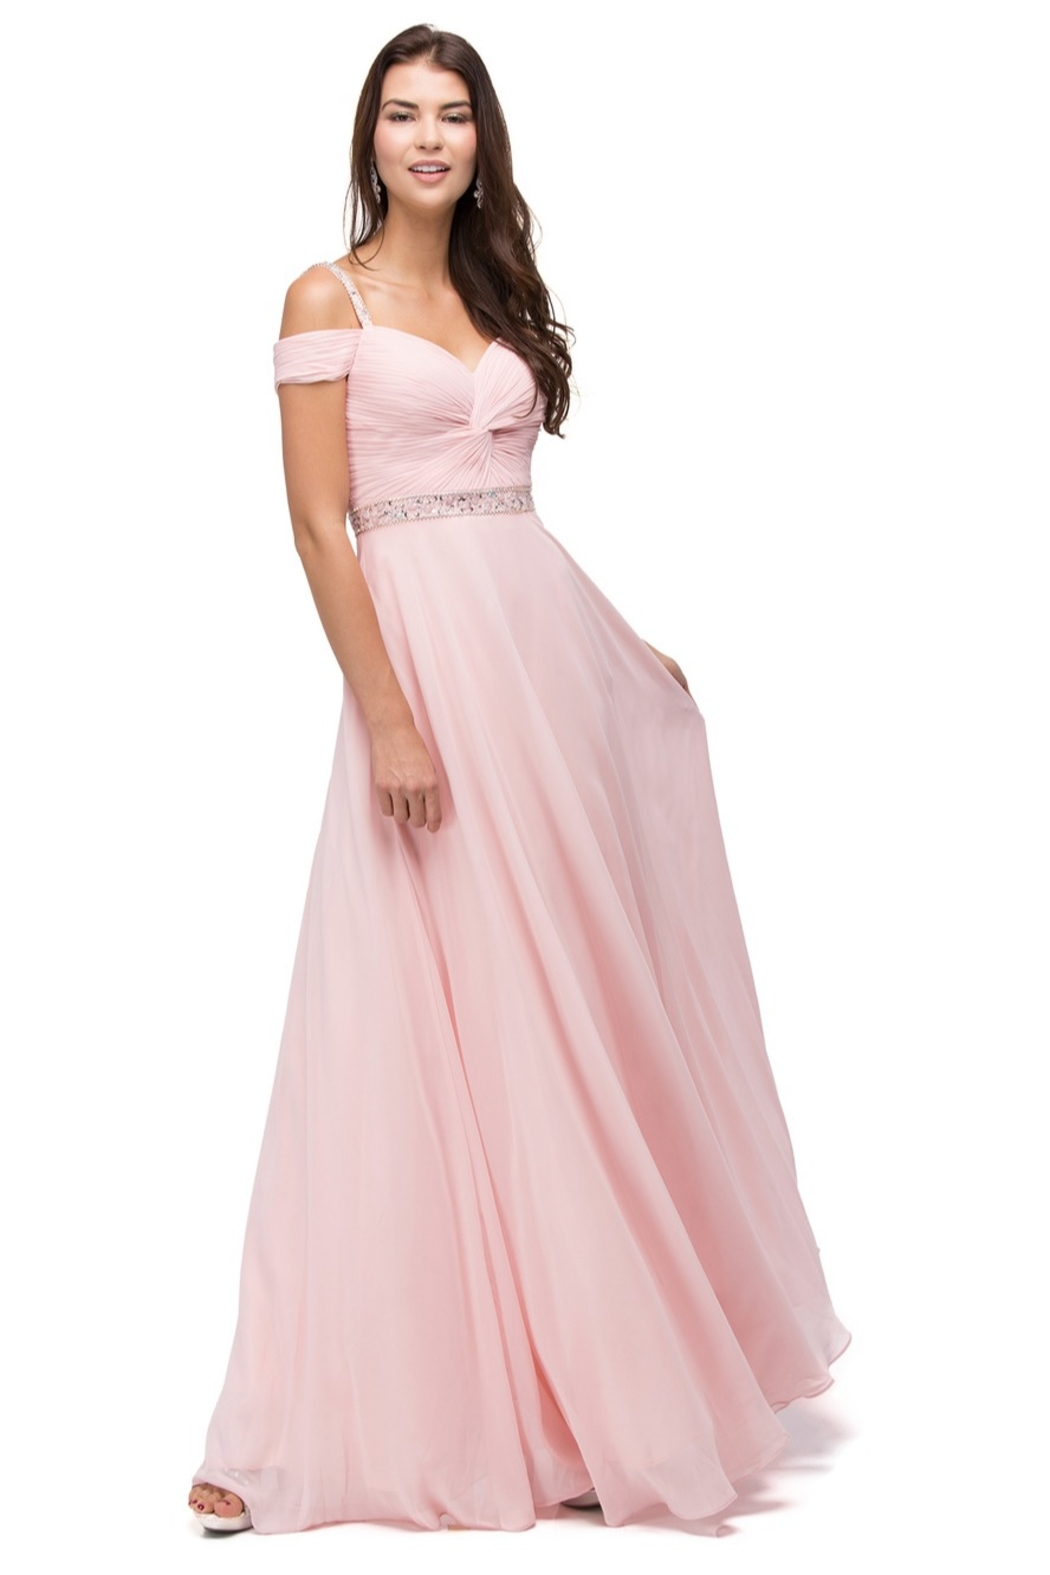 DANCING QUEEN Ruched Bejeweled Cold Shoulder Chiffon Dress - Main Image